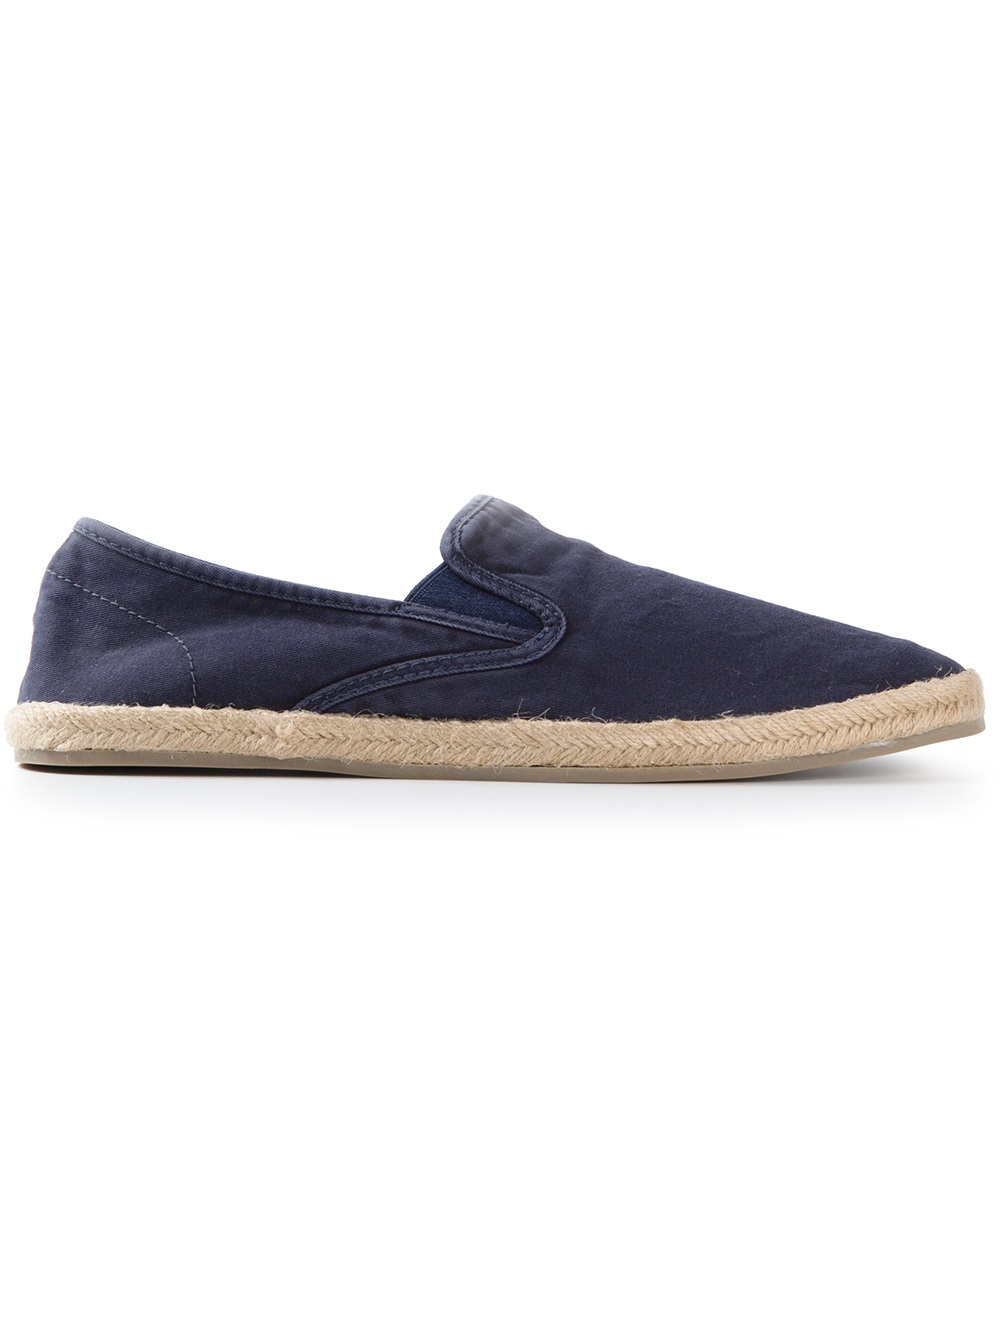 Lyst - Polo Ralph Lauren Swittle Espadrille in Blue for Men 8950fe80b120